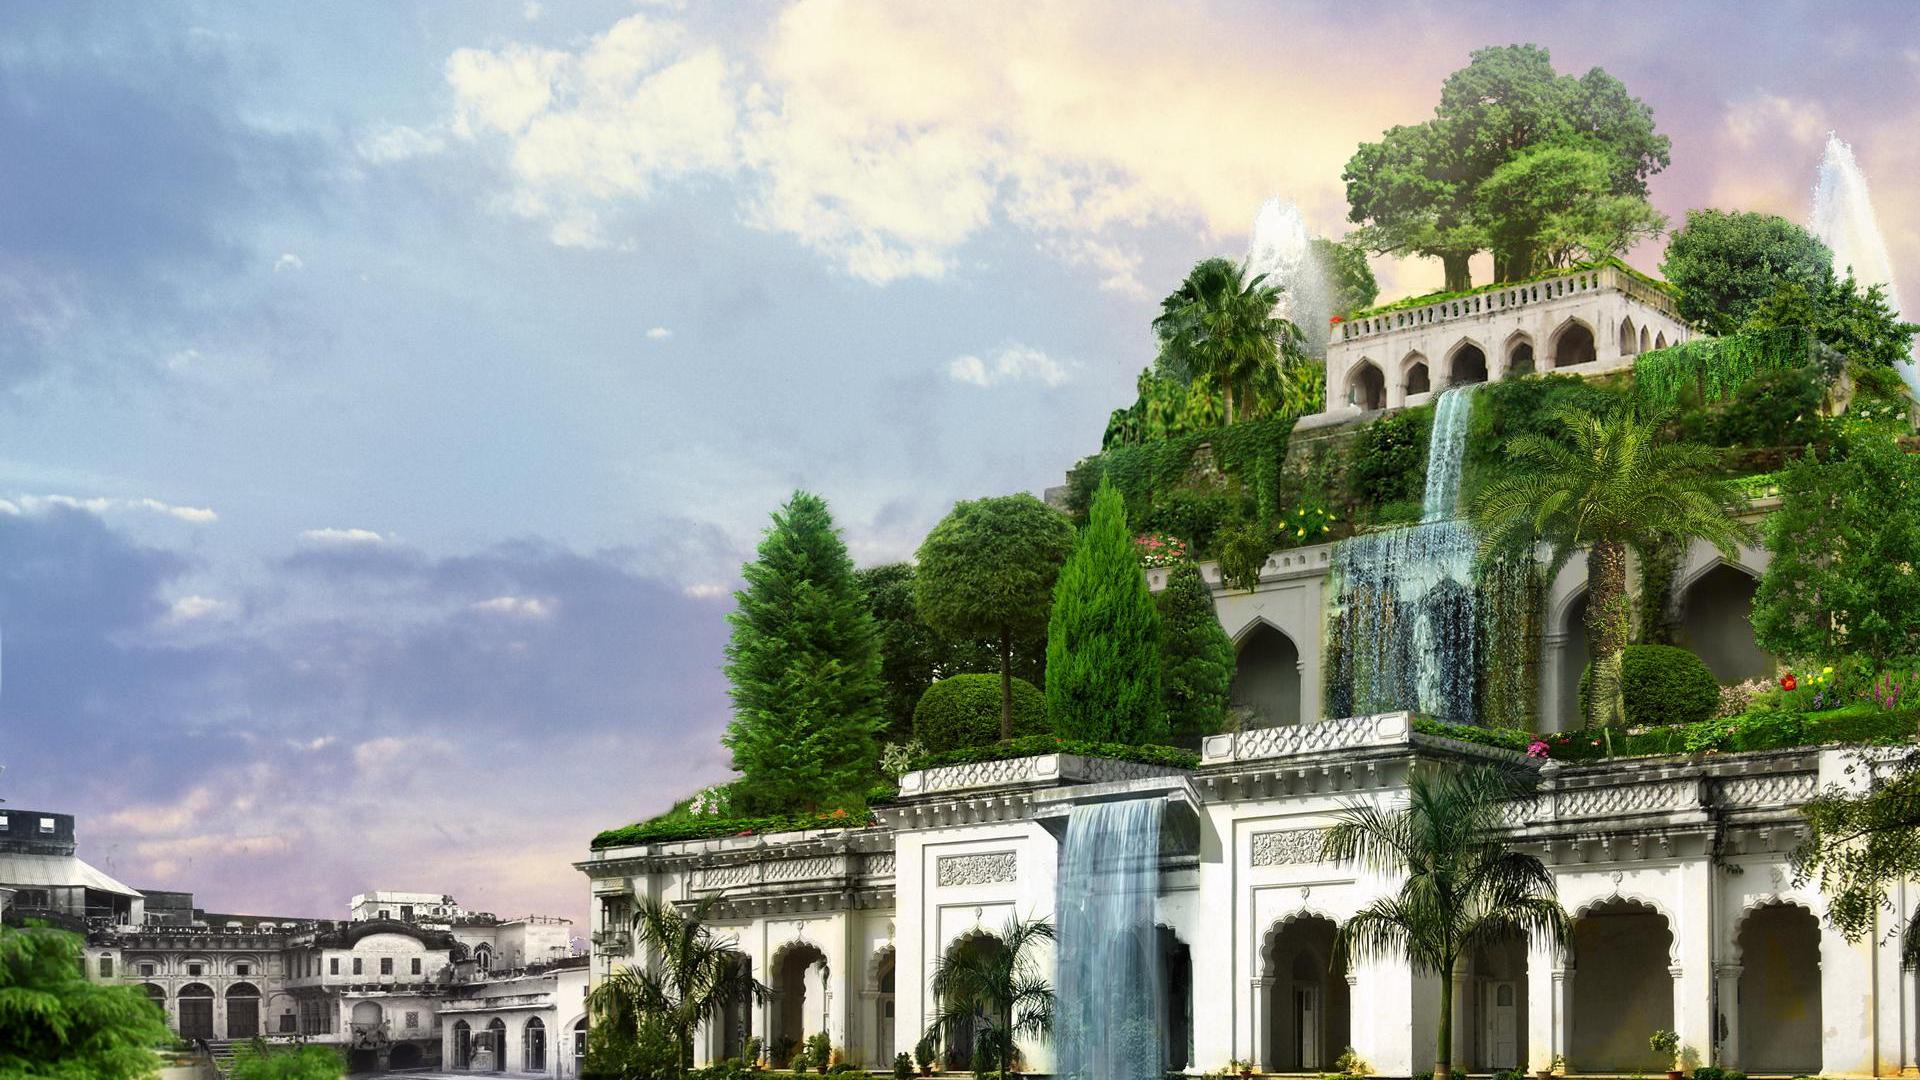 Hanging Gardens Of Babylon Wallpaper High Definition High Quality Widescreen